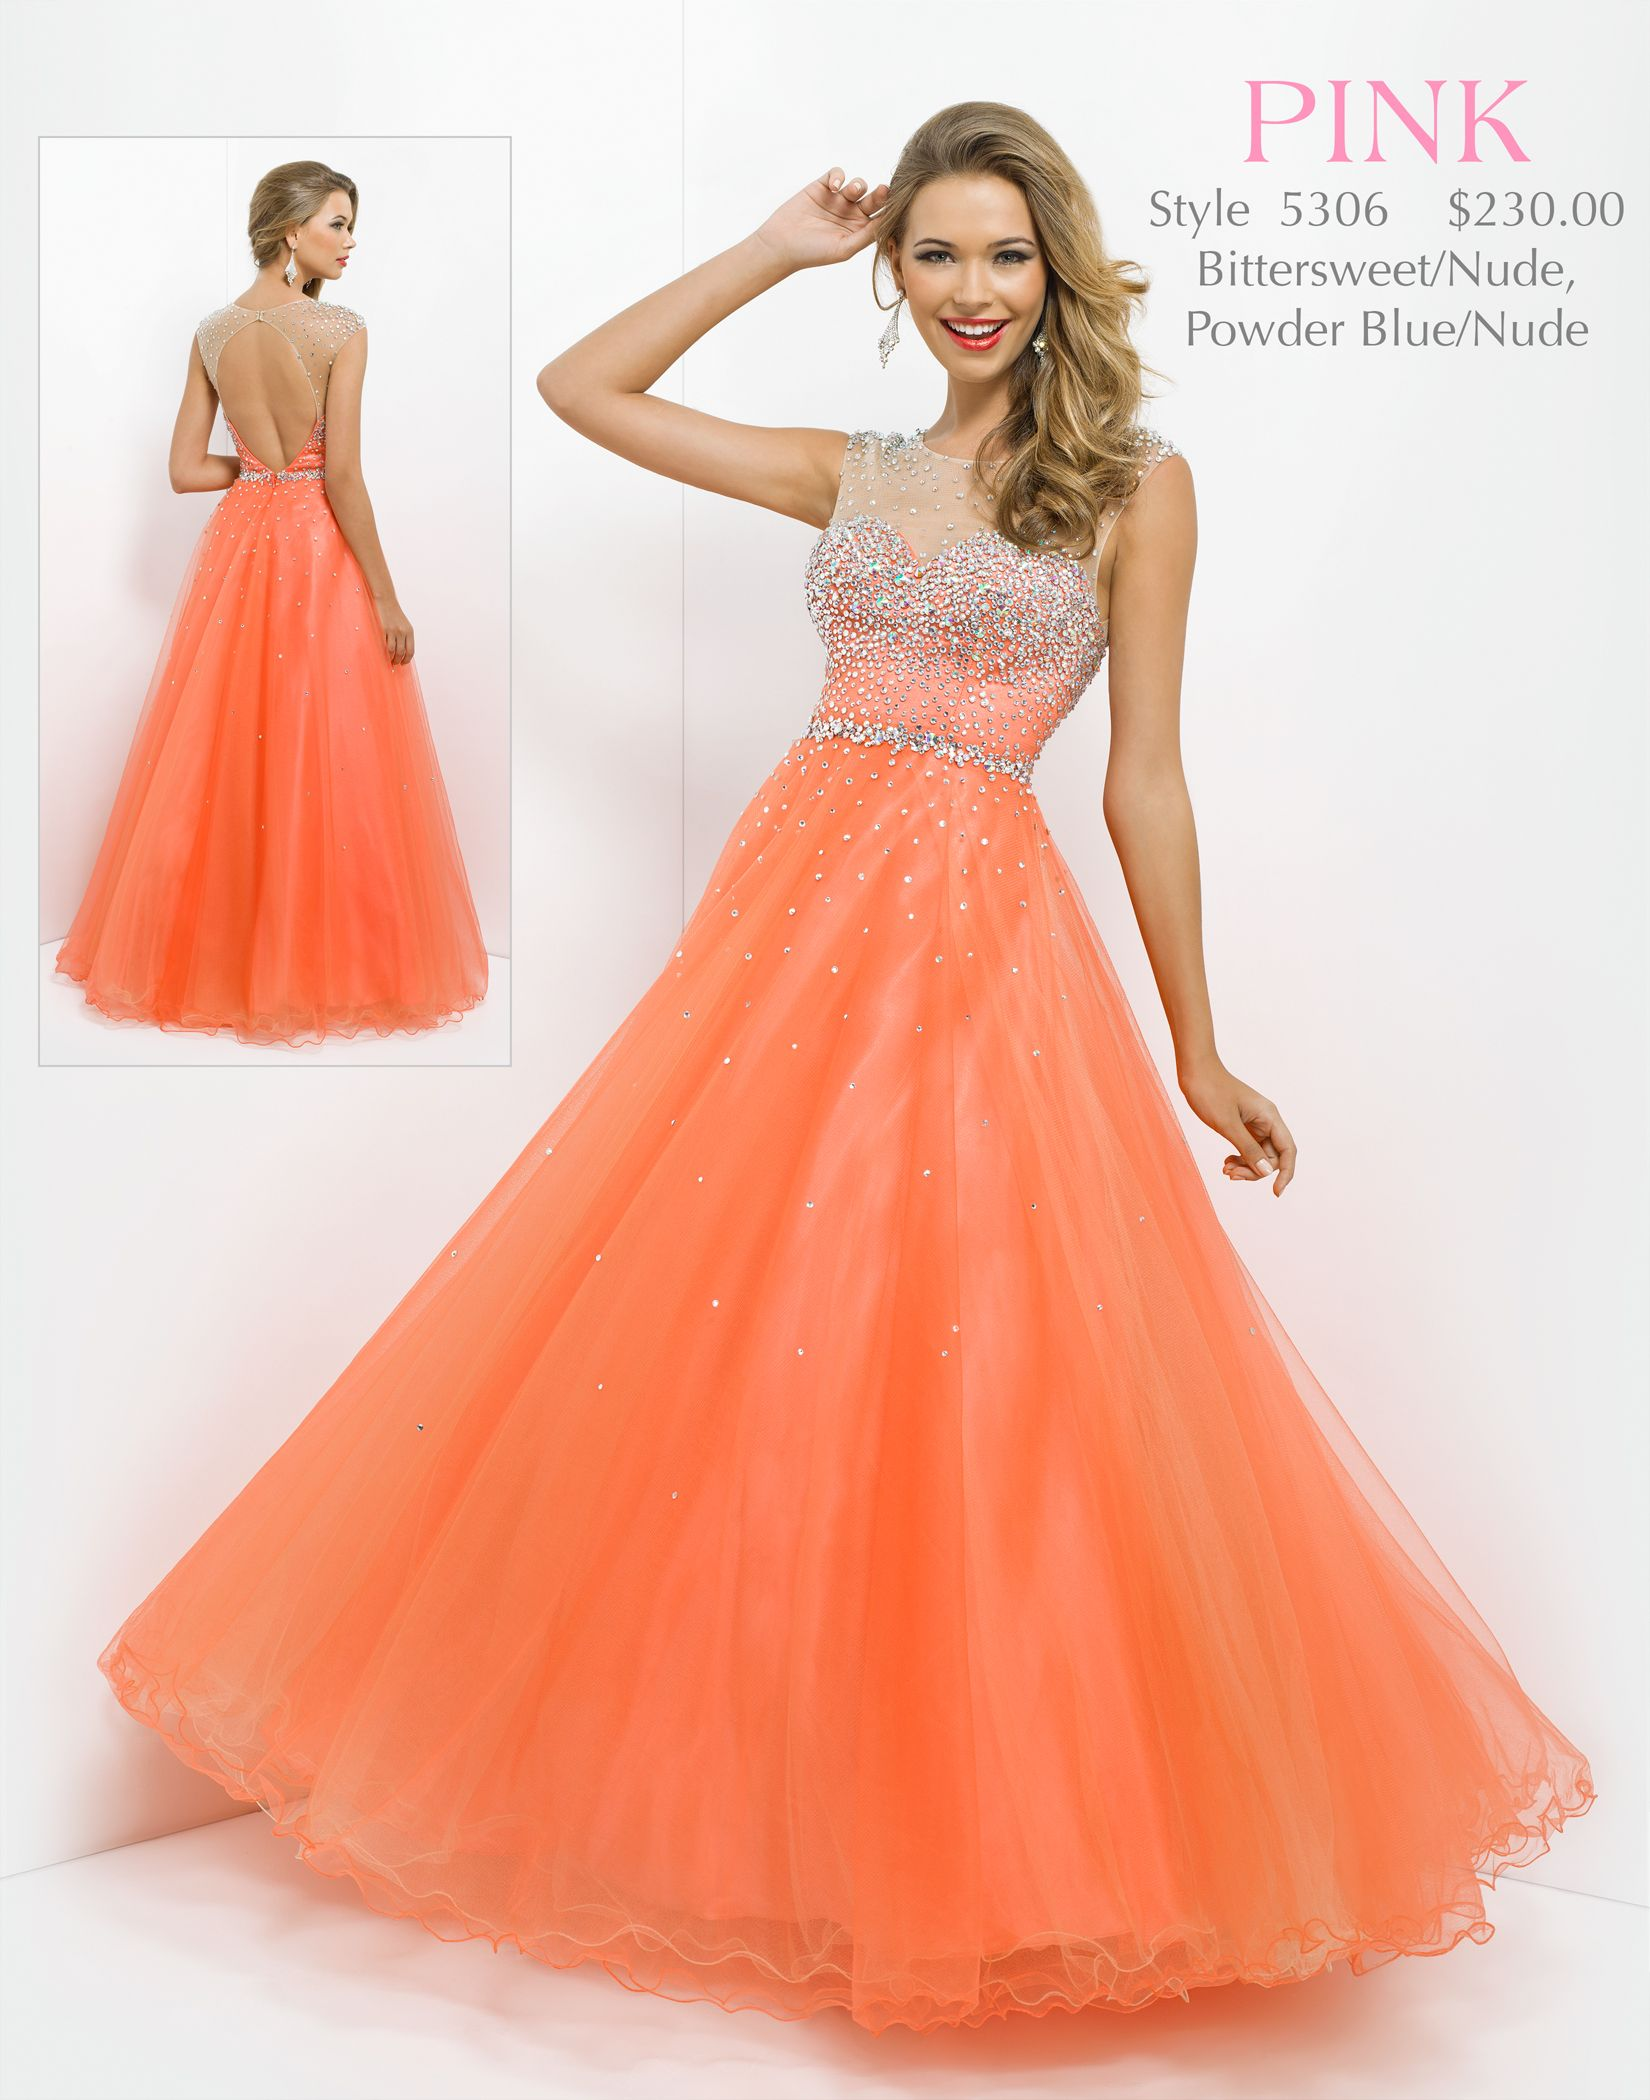 Ball gown prom dresses pinterest ball gowns gowns and formal